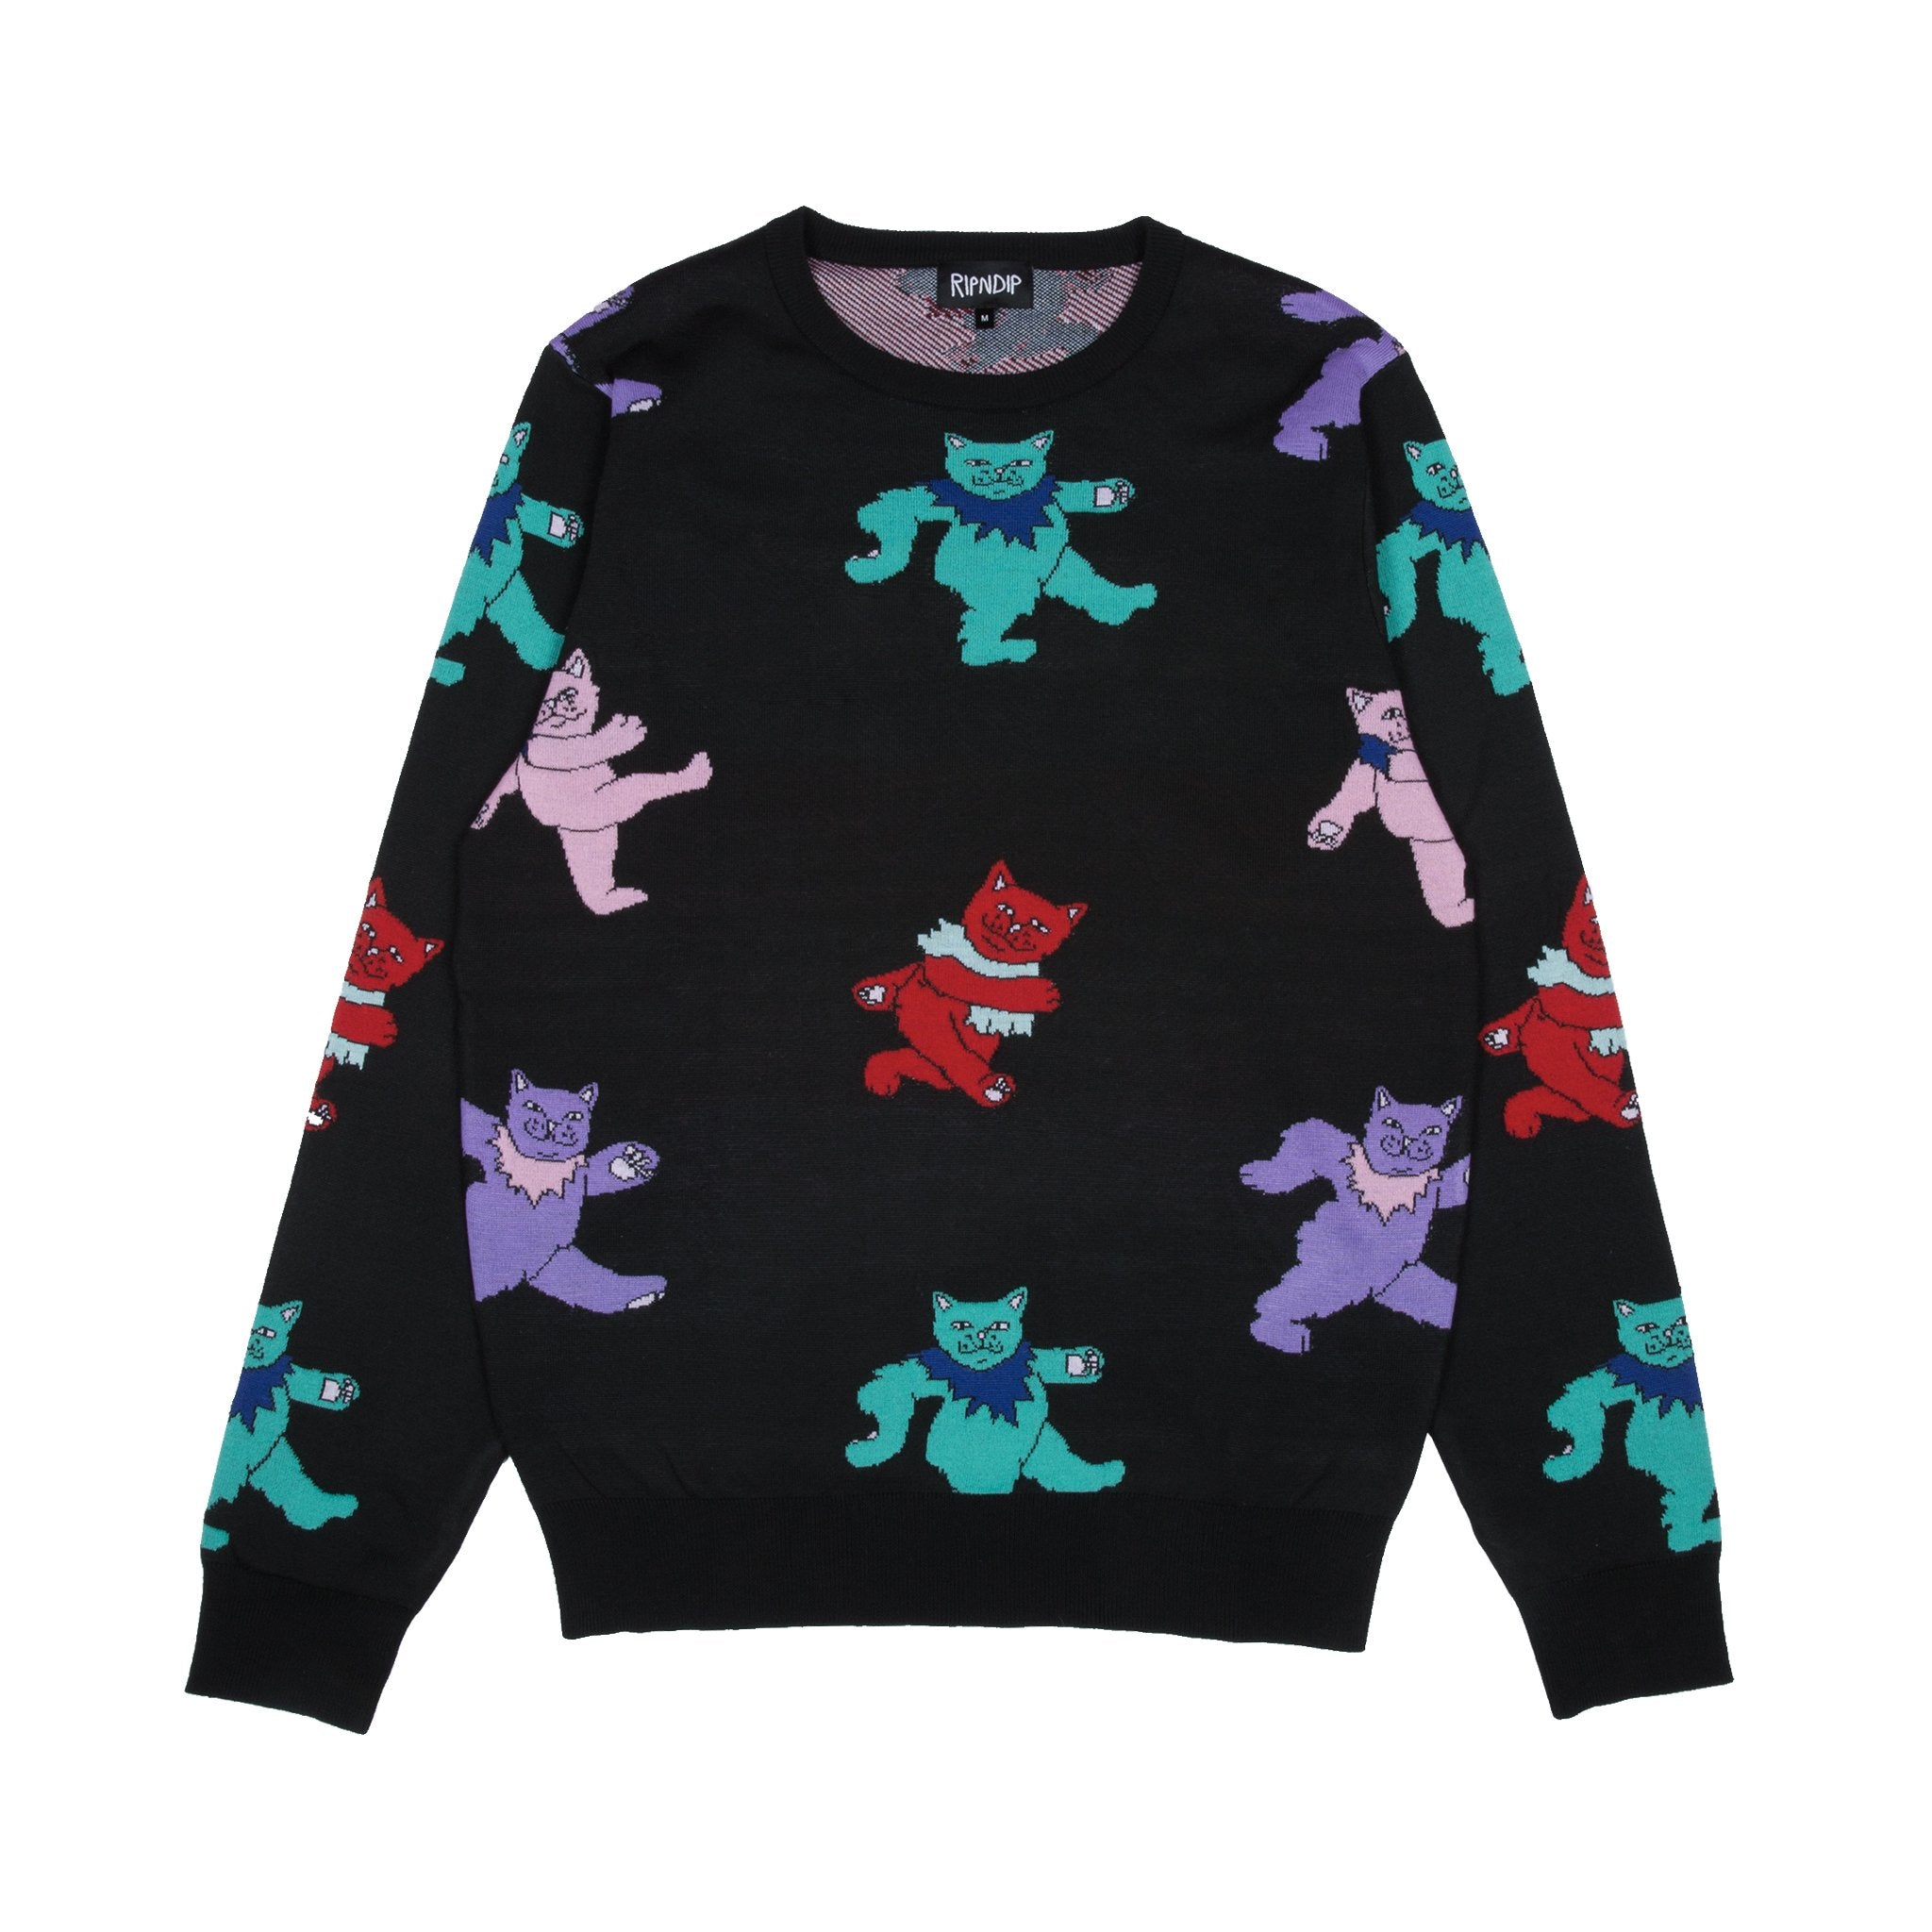 RIPNDIP - Dancing Nerm Men's Knit Sweater, Black - The Giant Peach